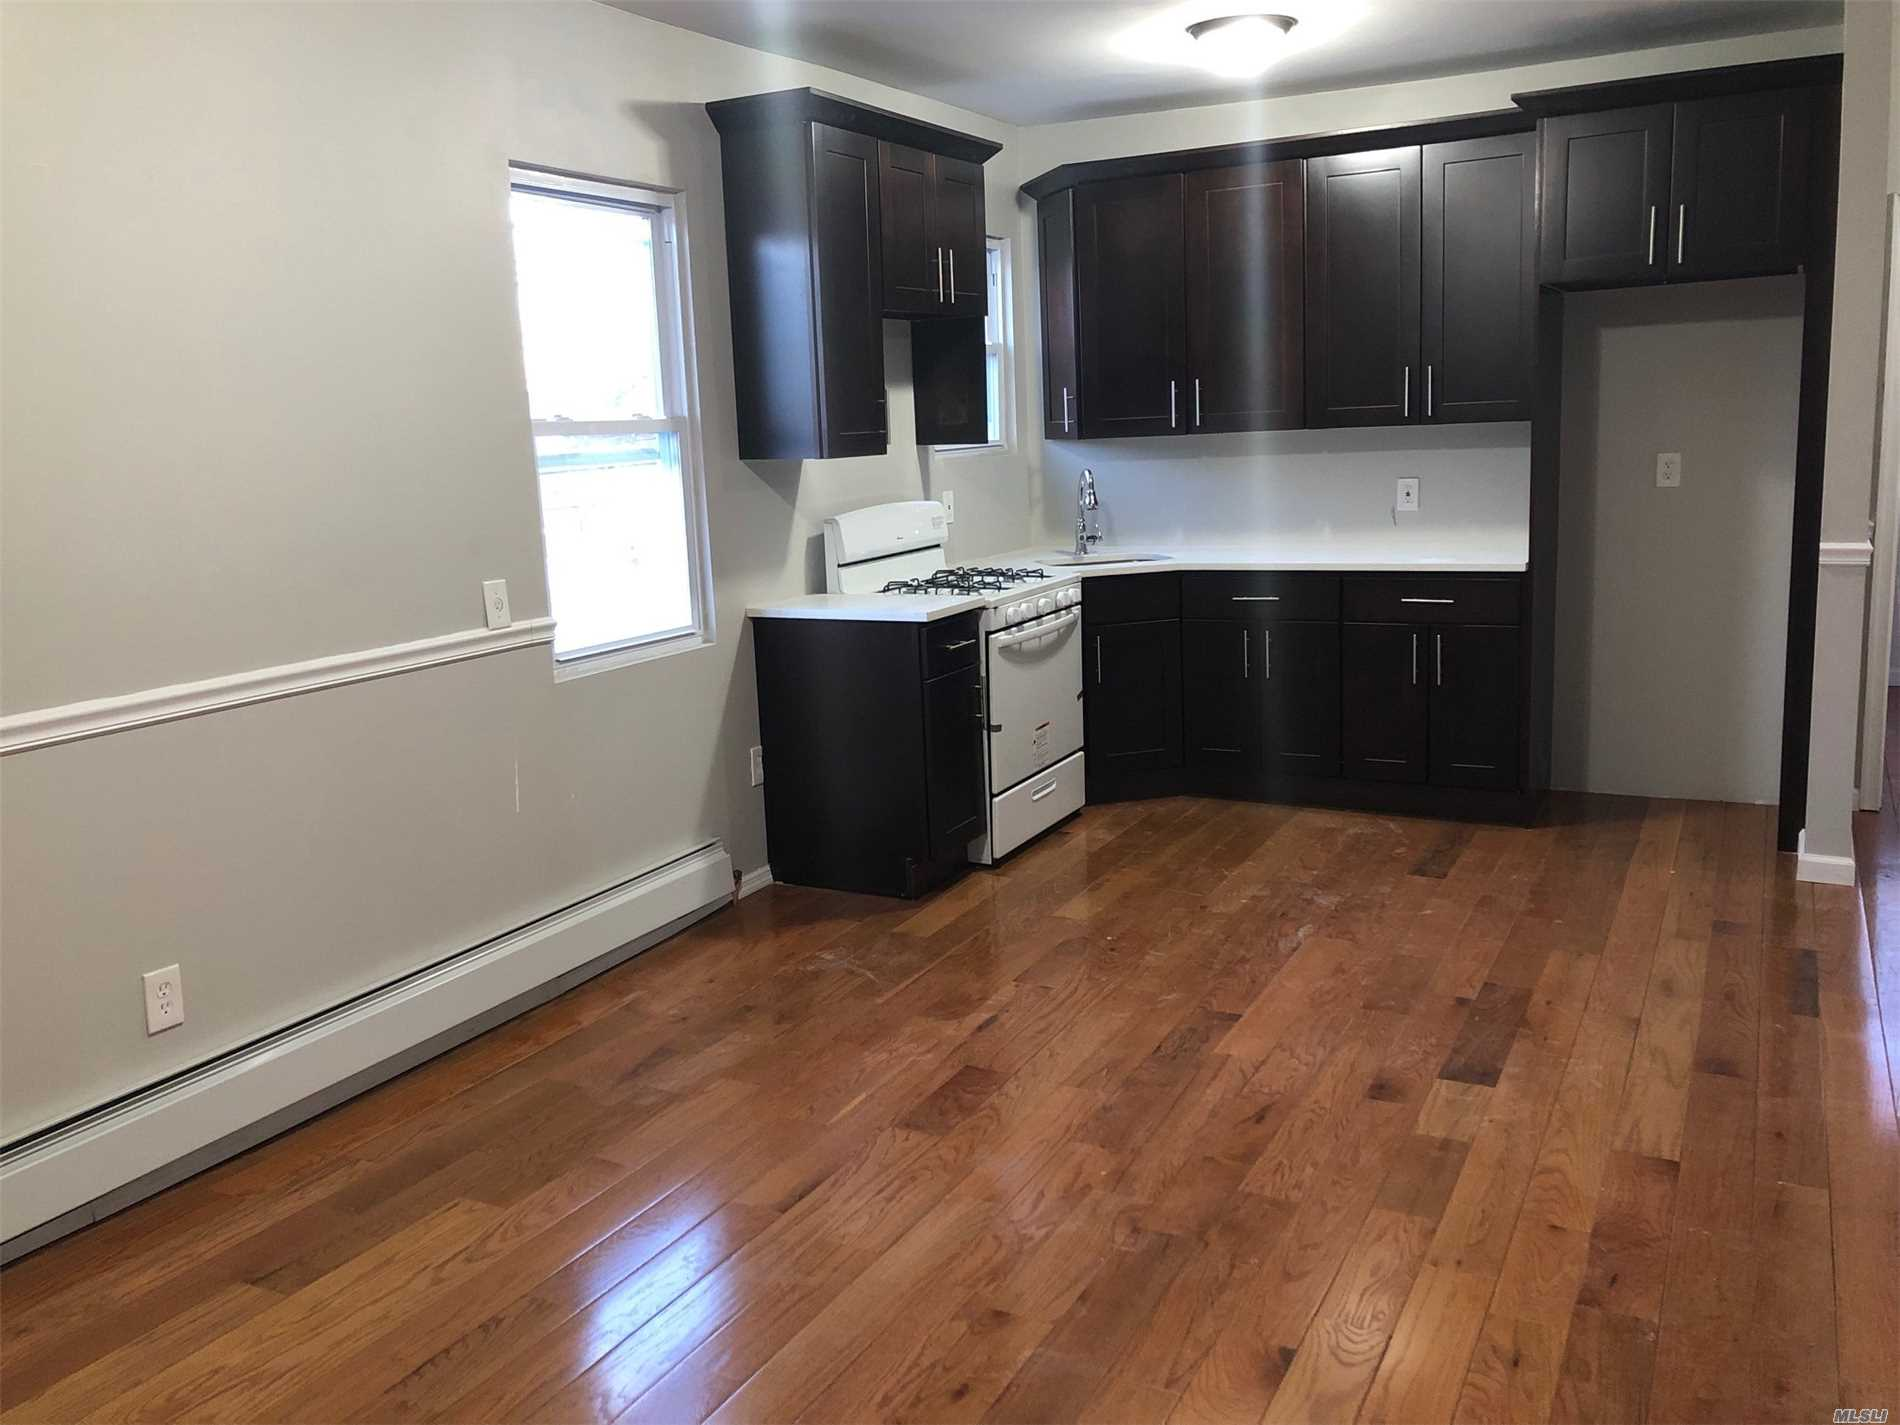 Beautifully renovated 3 bedrooms and 1 bath apartment. Hardwood floors throughout. Turn key ready to make it your home.